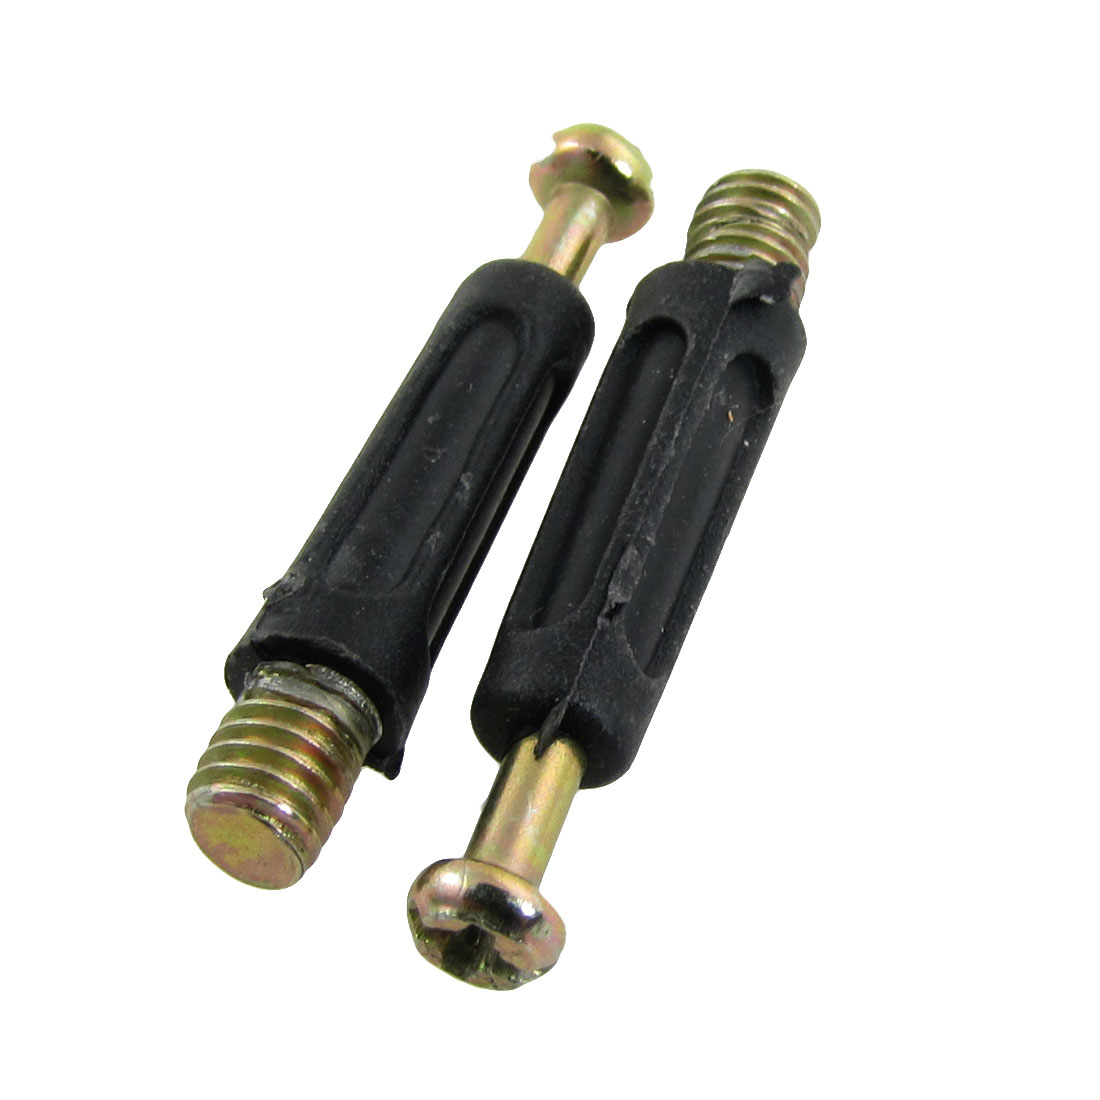 5-Set-Pre-inserted-Nuts-Dowels-0-55-Cam-Fittings-for-Furniture-Connection